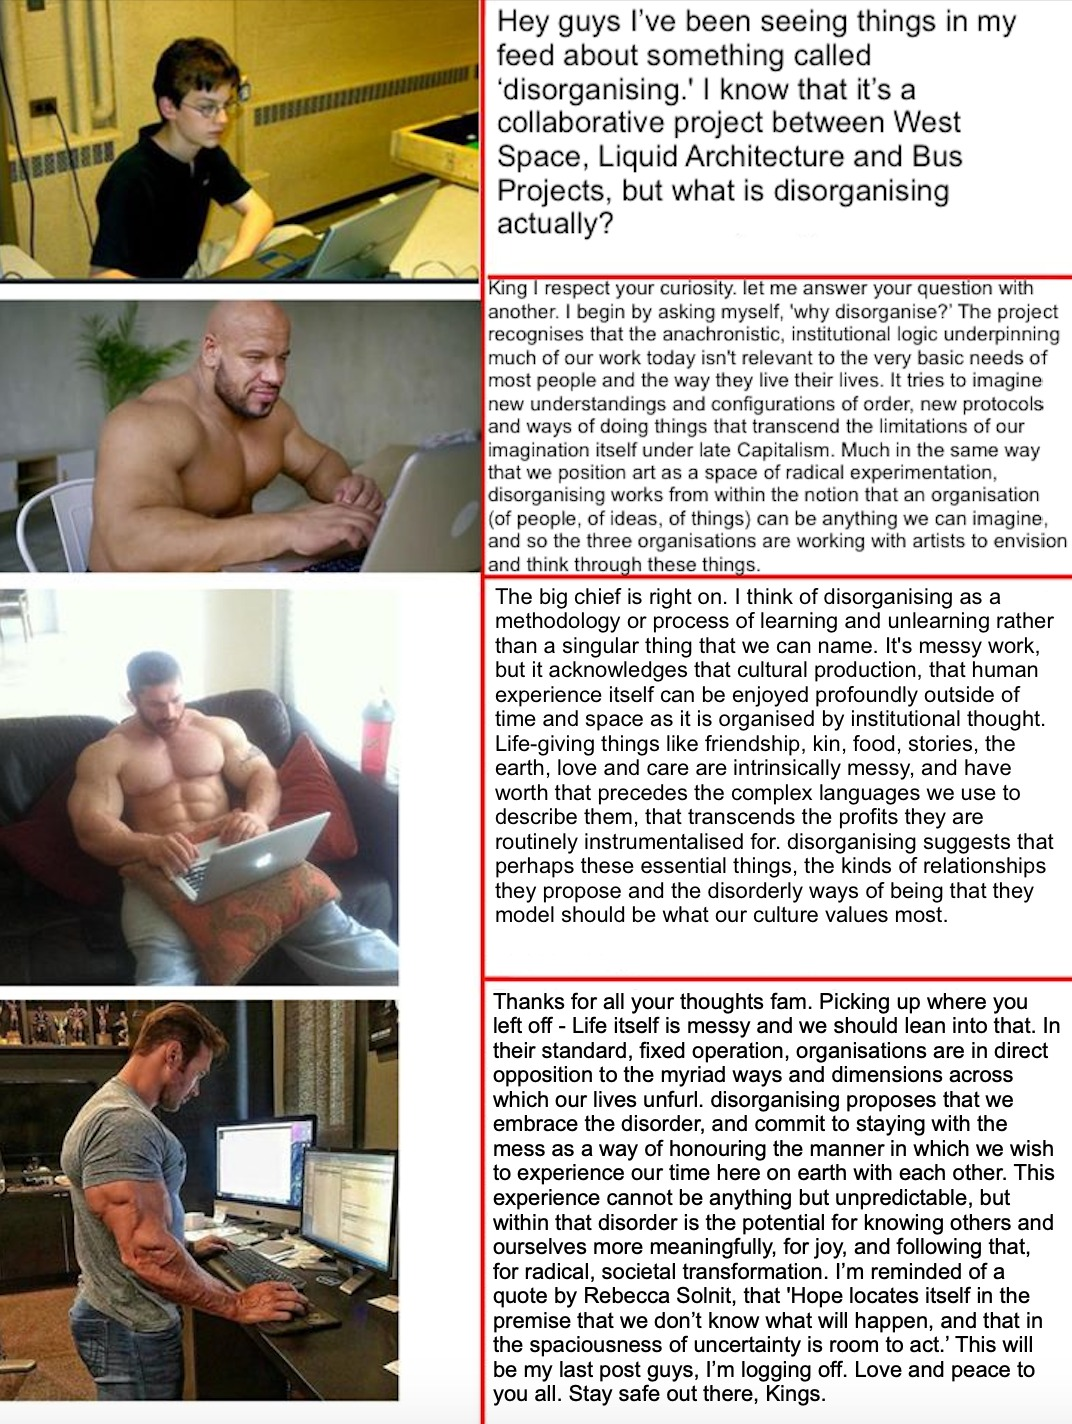 a meme for disorganising featuring a young boy sitting at a computer and three muscley men sitting at their laptops.